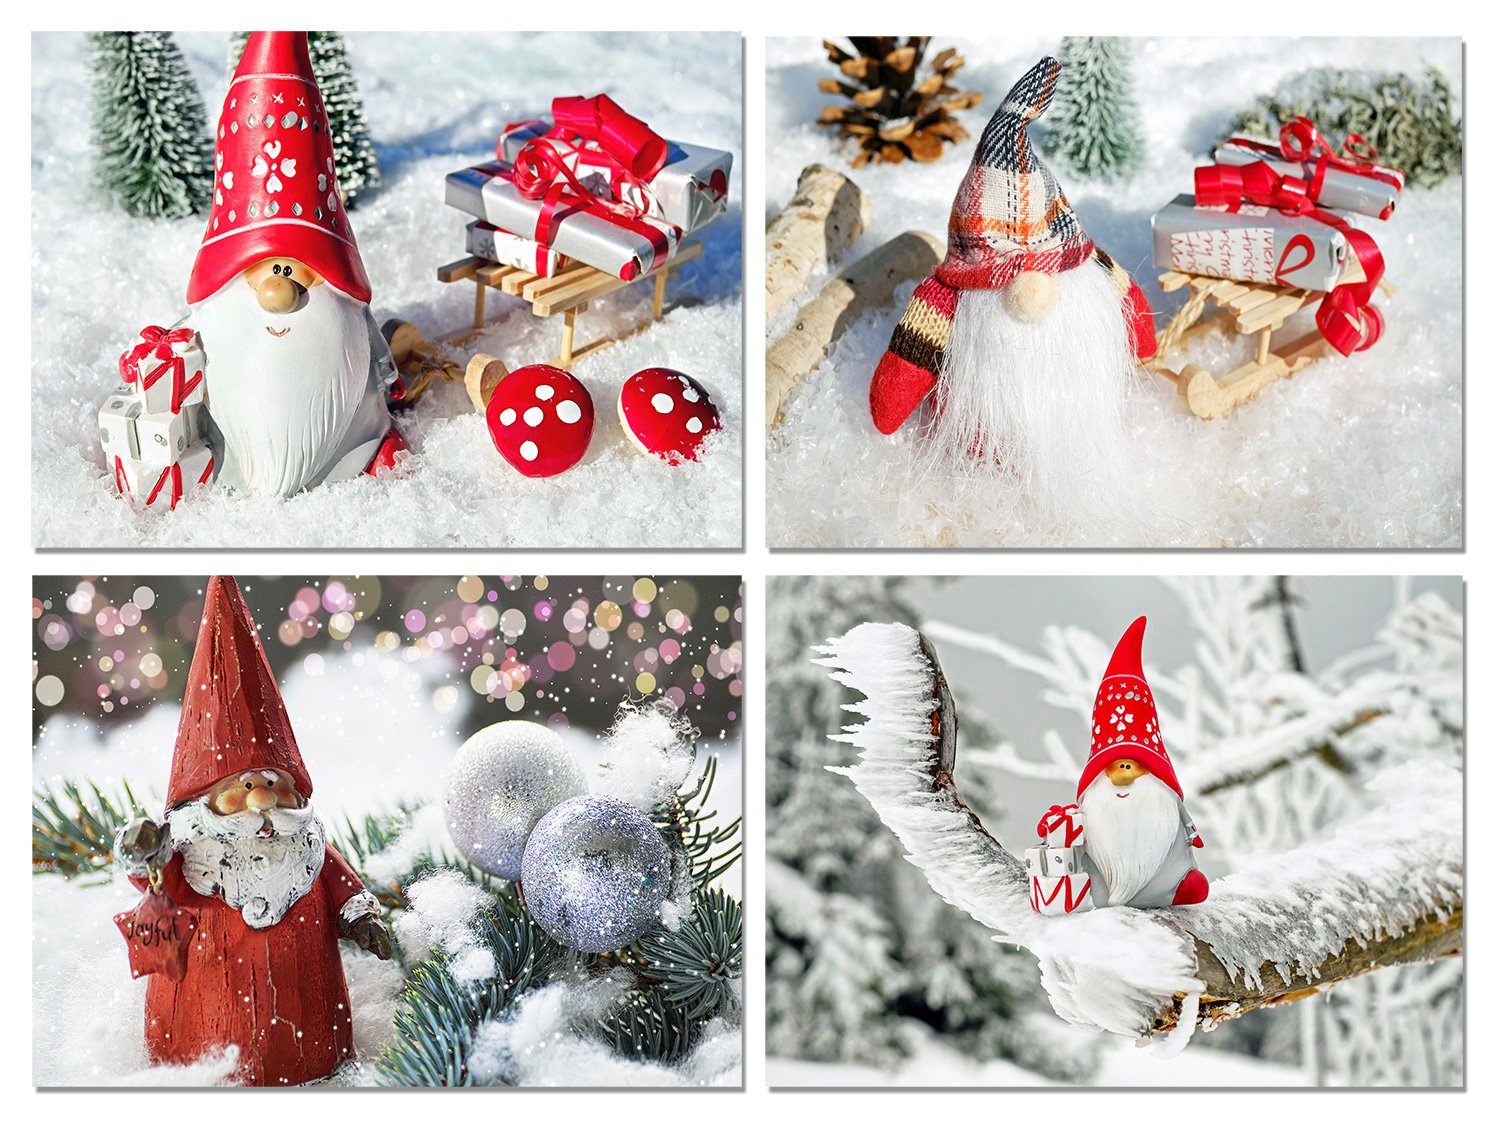 Amazon.com : Christmas Gnomes Blank Note Cards - Holiday Greeting ...